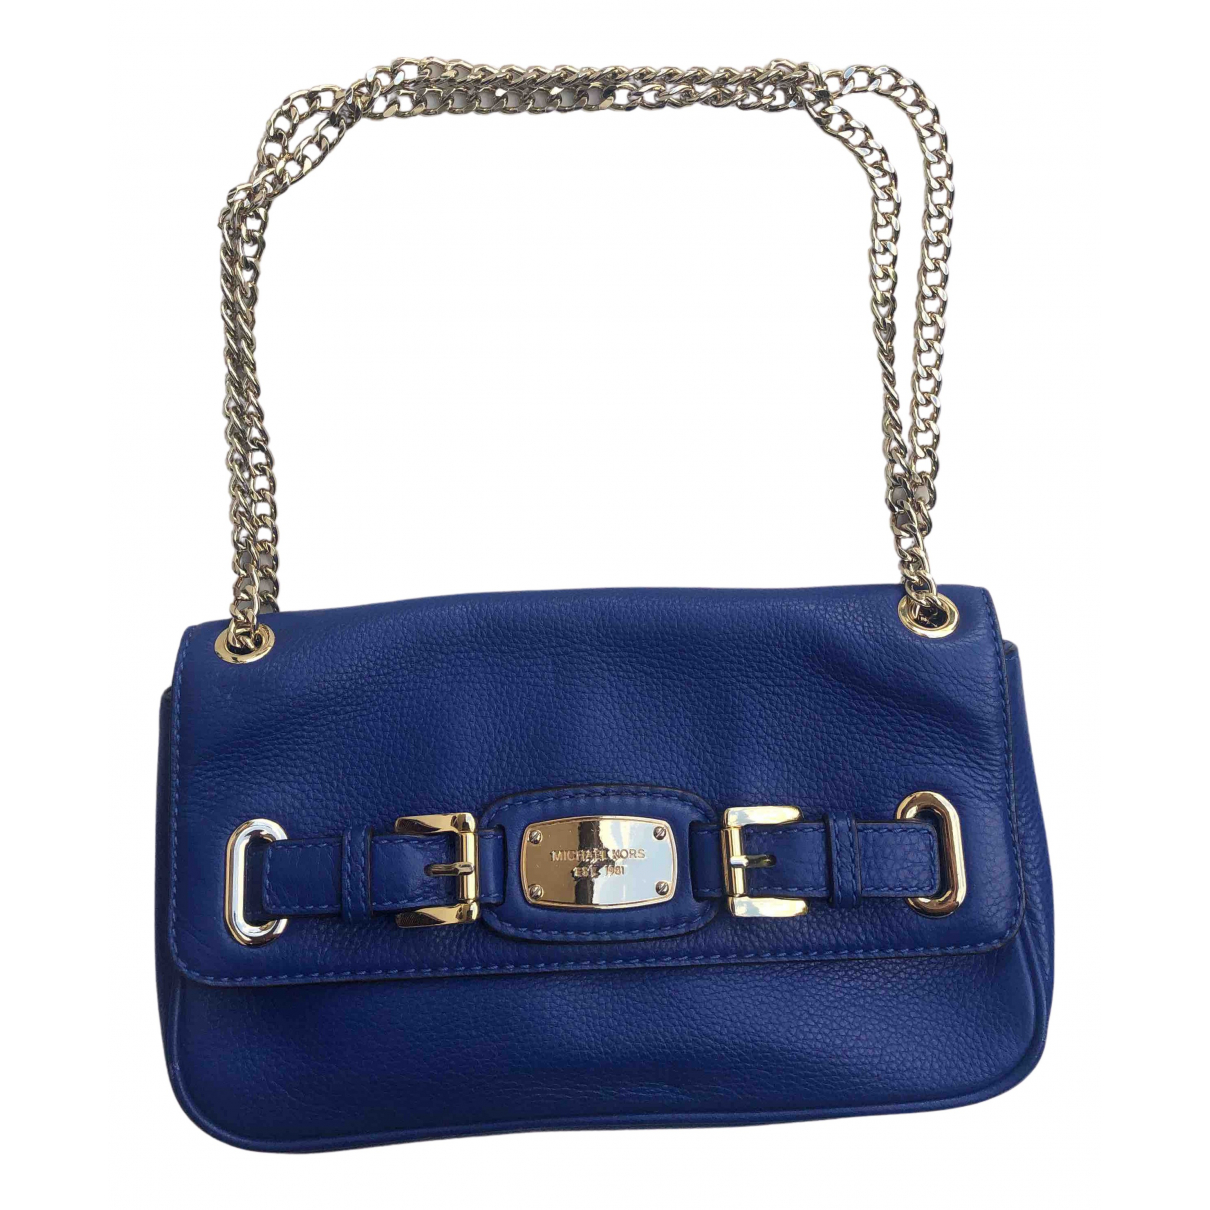 Michael Kors \N Clutch in  Blau Leder